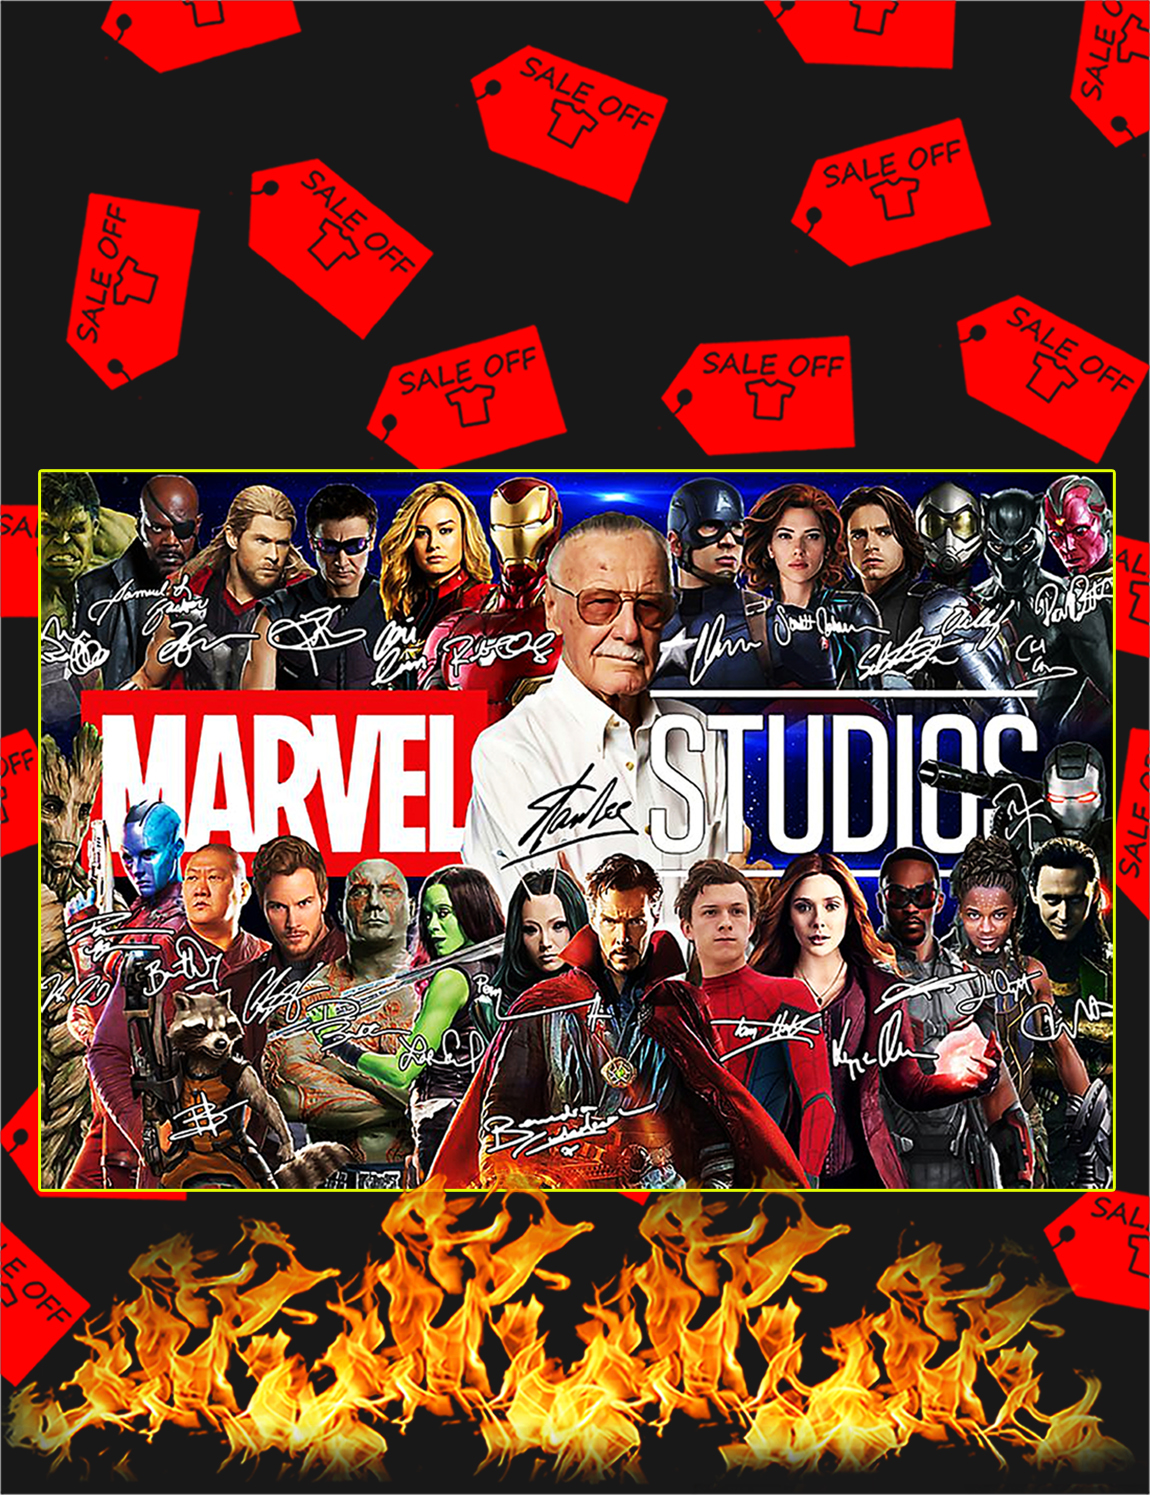 Stan lee marvel studios poster - A2